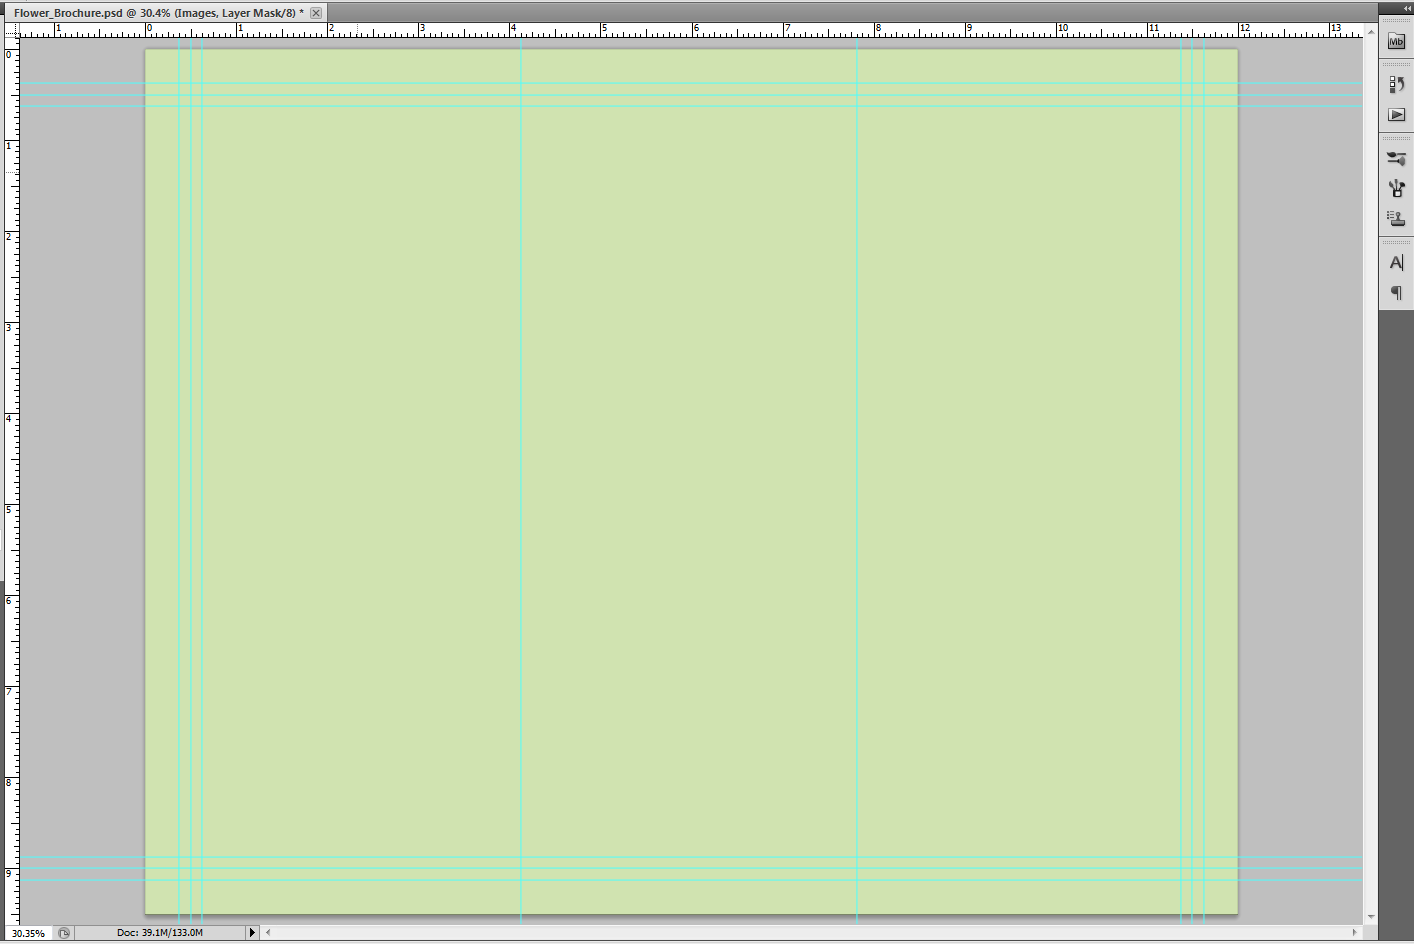 Image of brochure in progress, with solid background color covering canvas in light green.